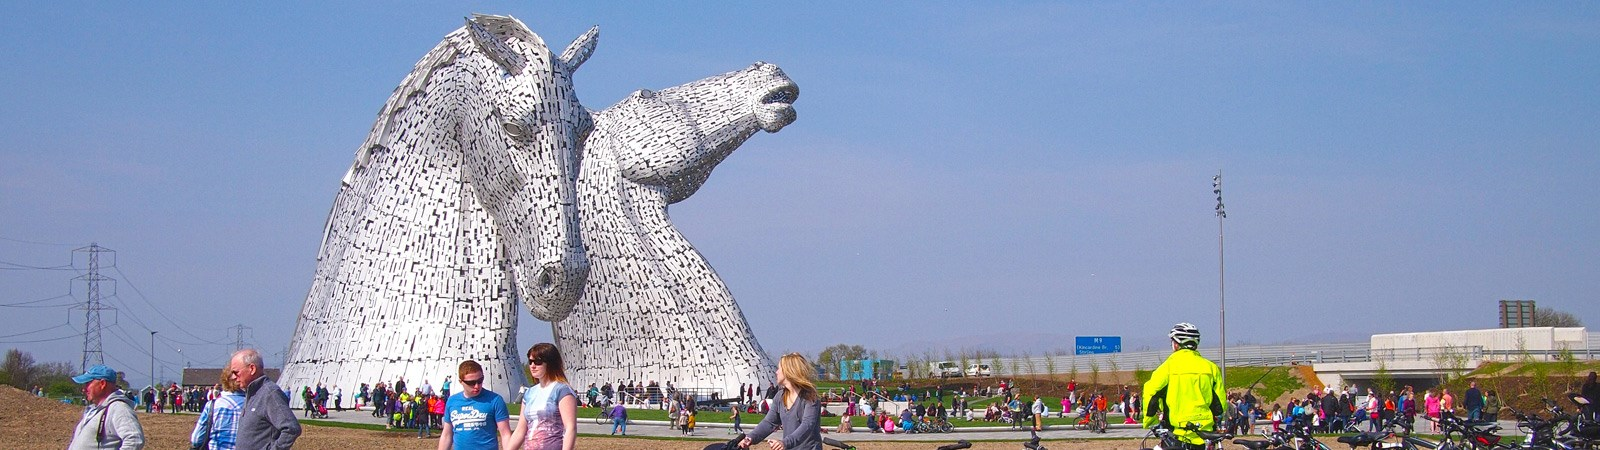 View of the Kelpies, Helix Park, Falkirk